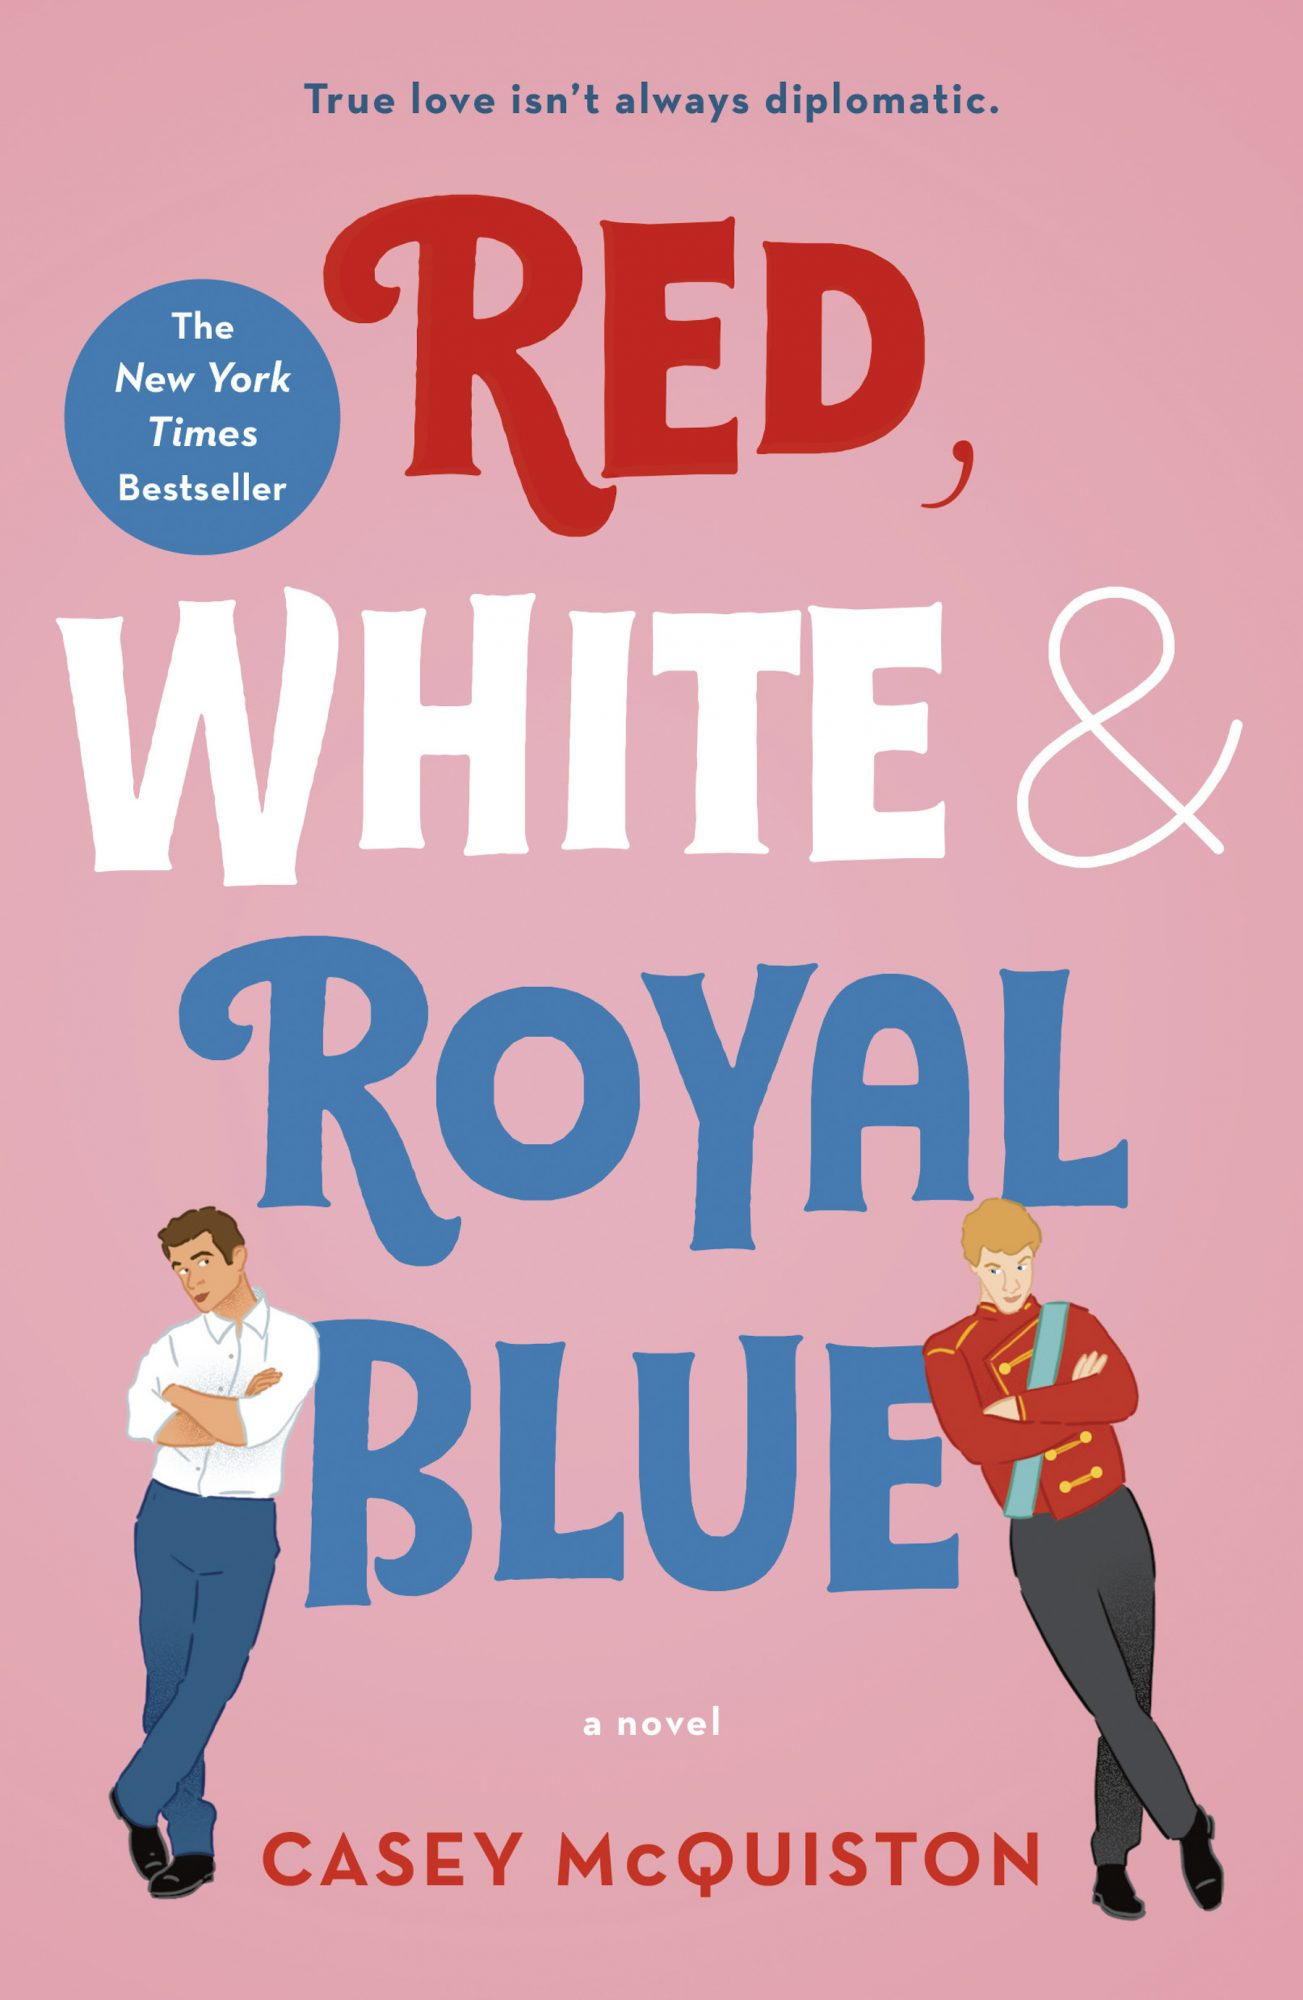 Red, White & Royal Blue: A Novel by Casey McQuiston CR: St. Martin's Griffin